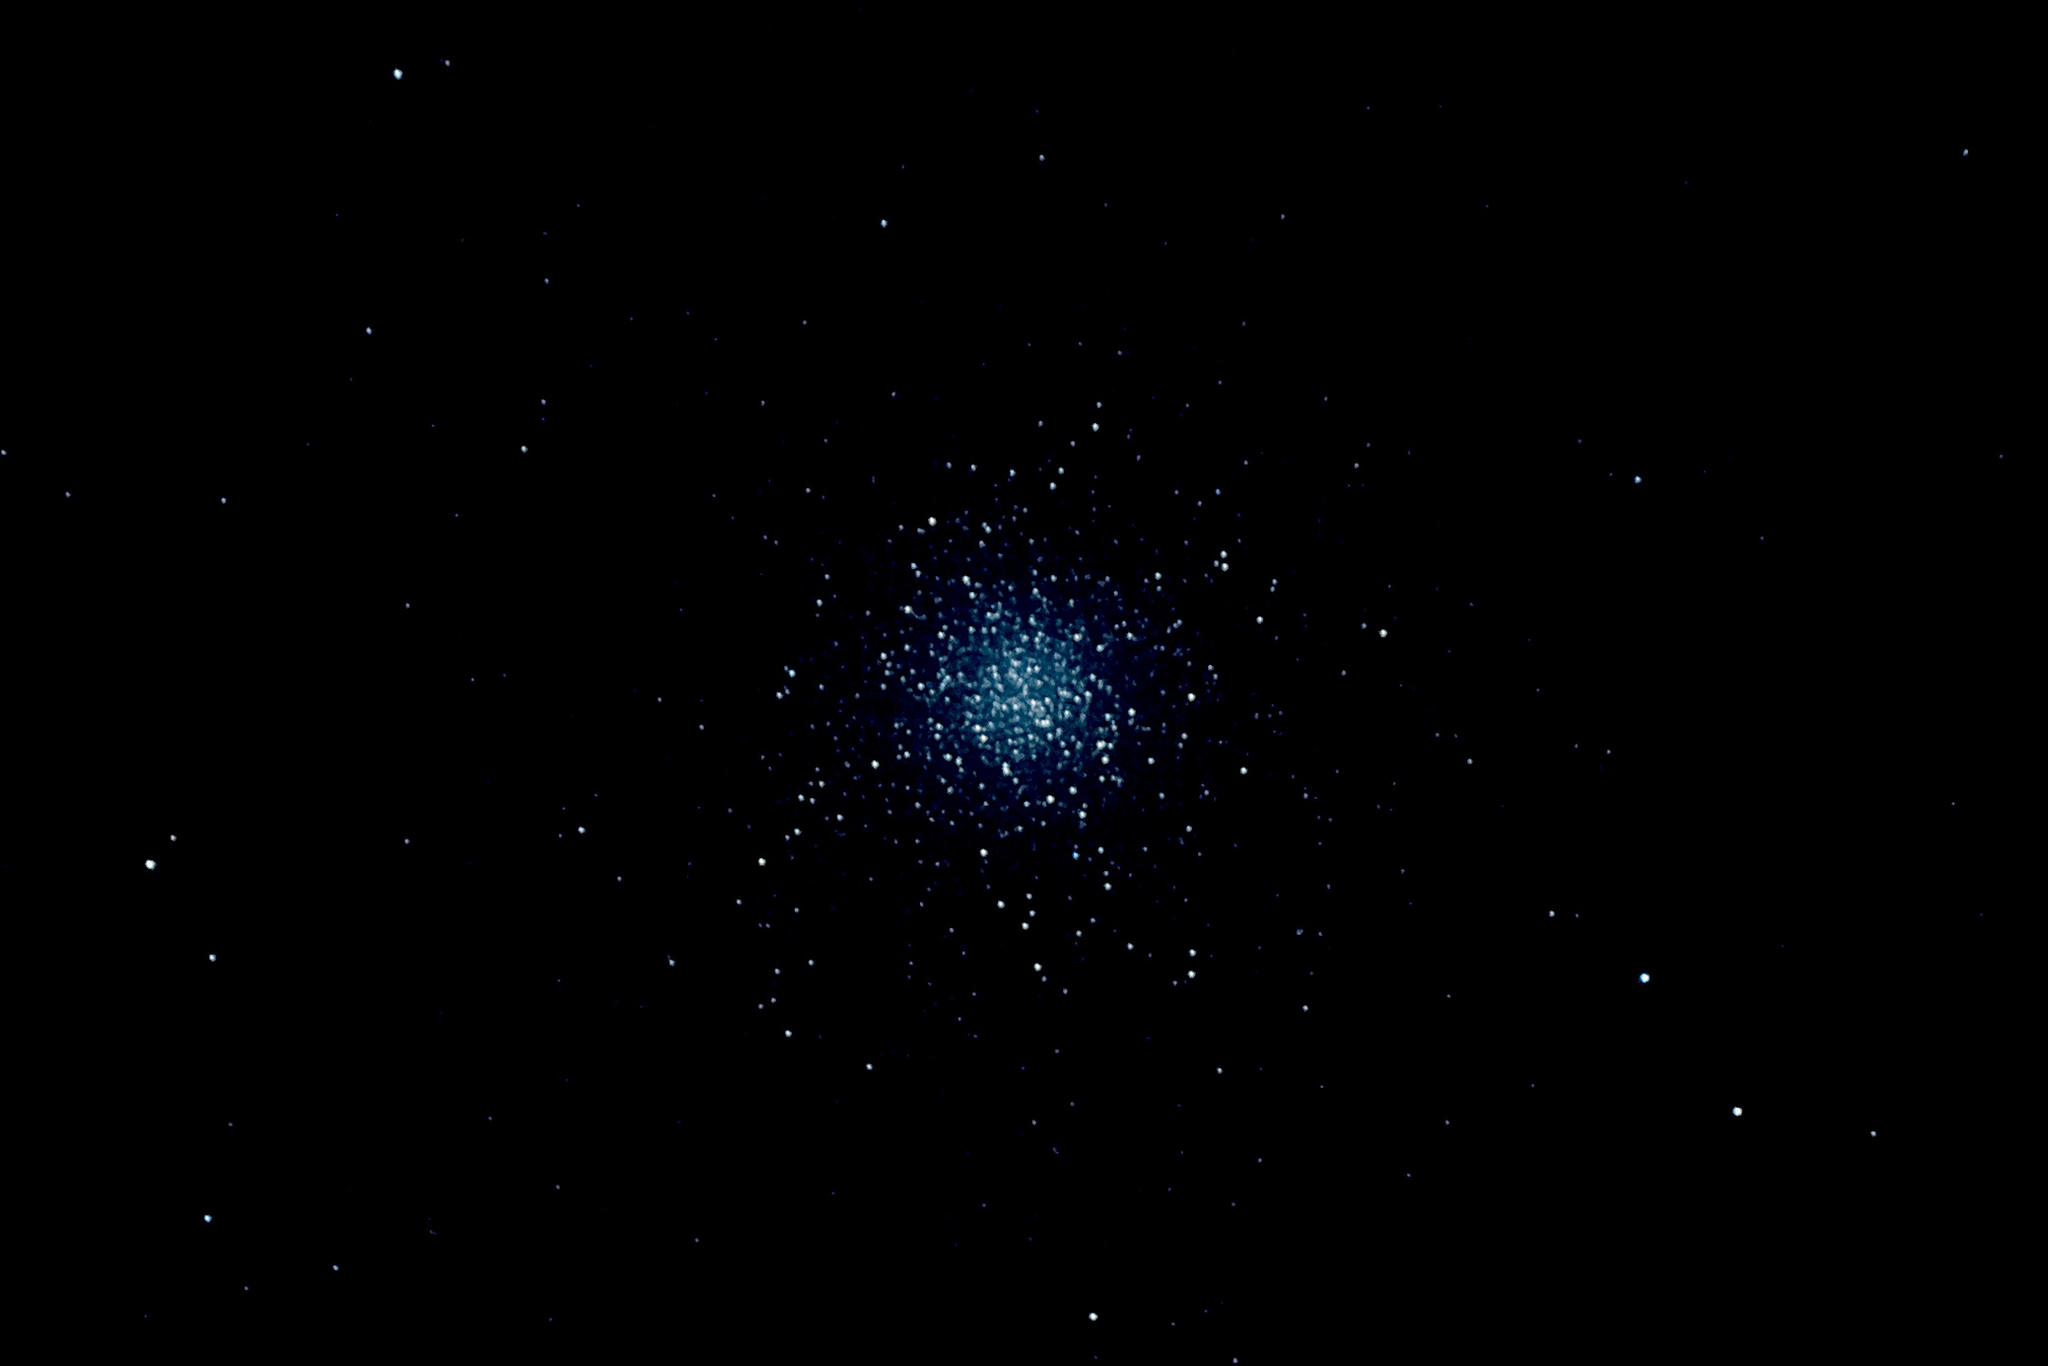 Great Hercules Globular Cluster M13